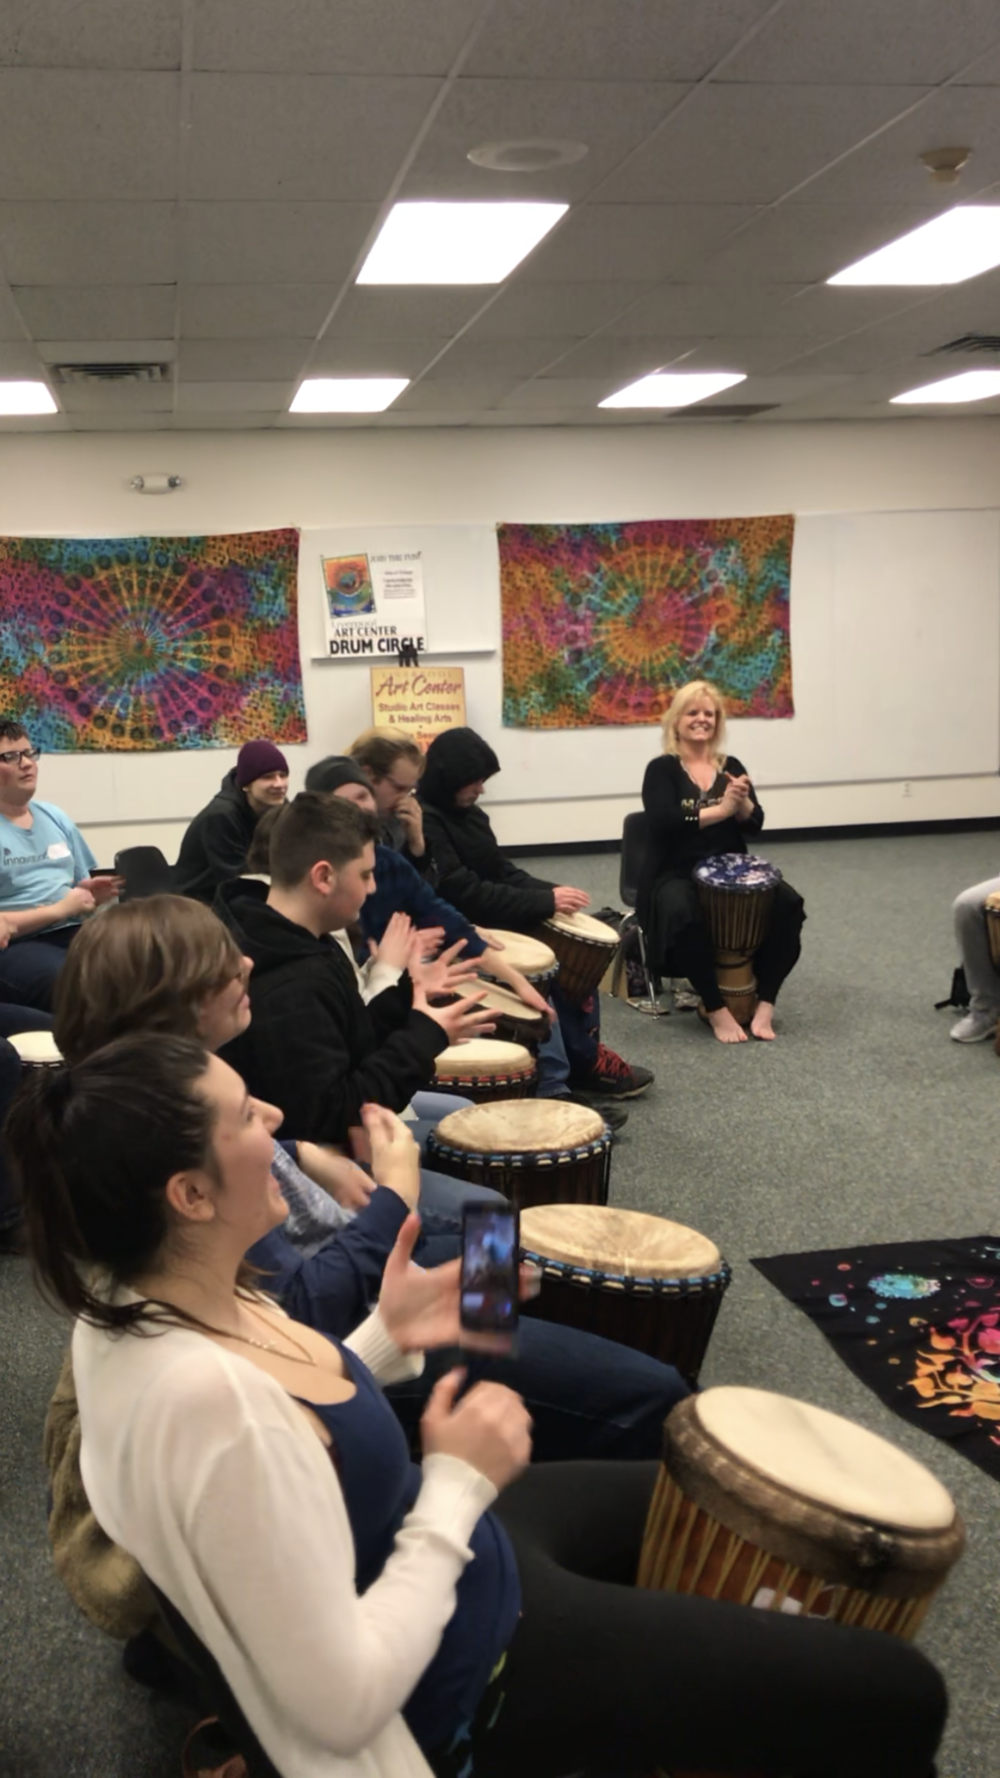 All expressive arts offer ways to have fun and feel joy in arenas that invite us to step out of our comfort zone. Drum! Paint! Draw! Move! Speak!